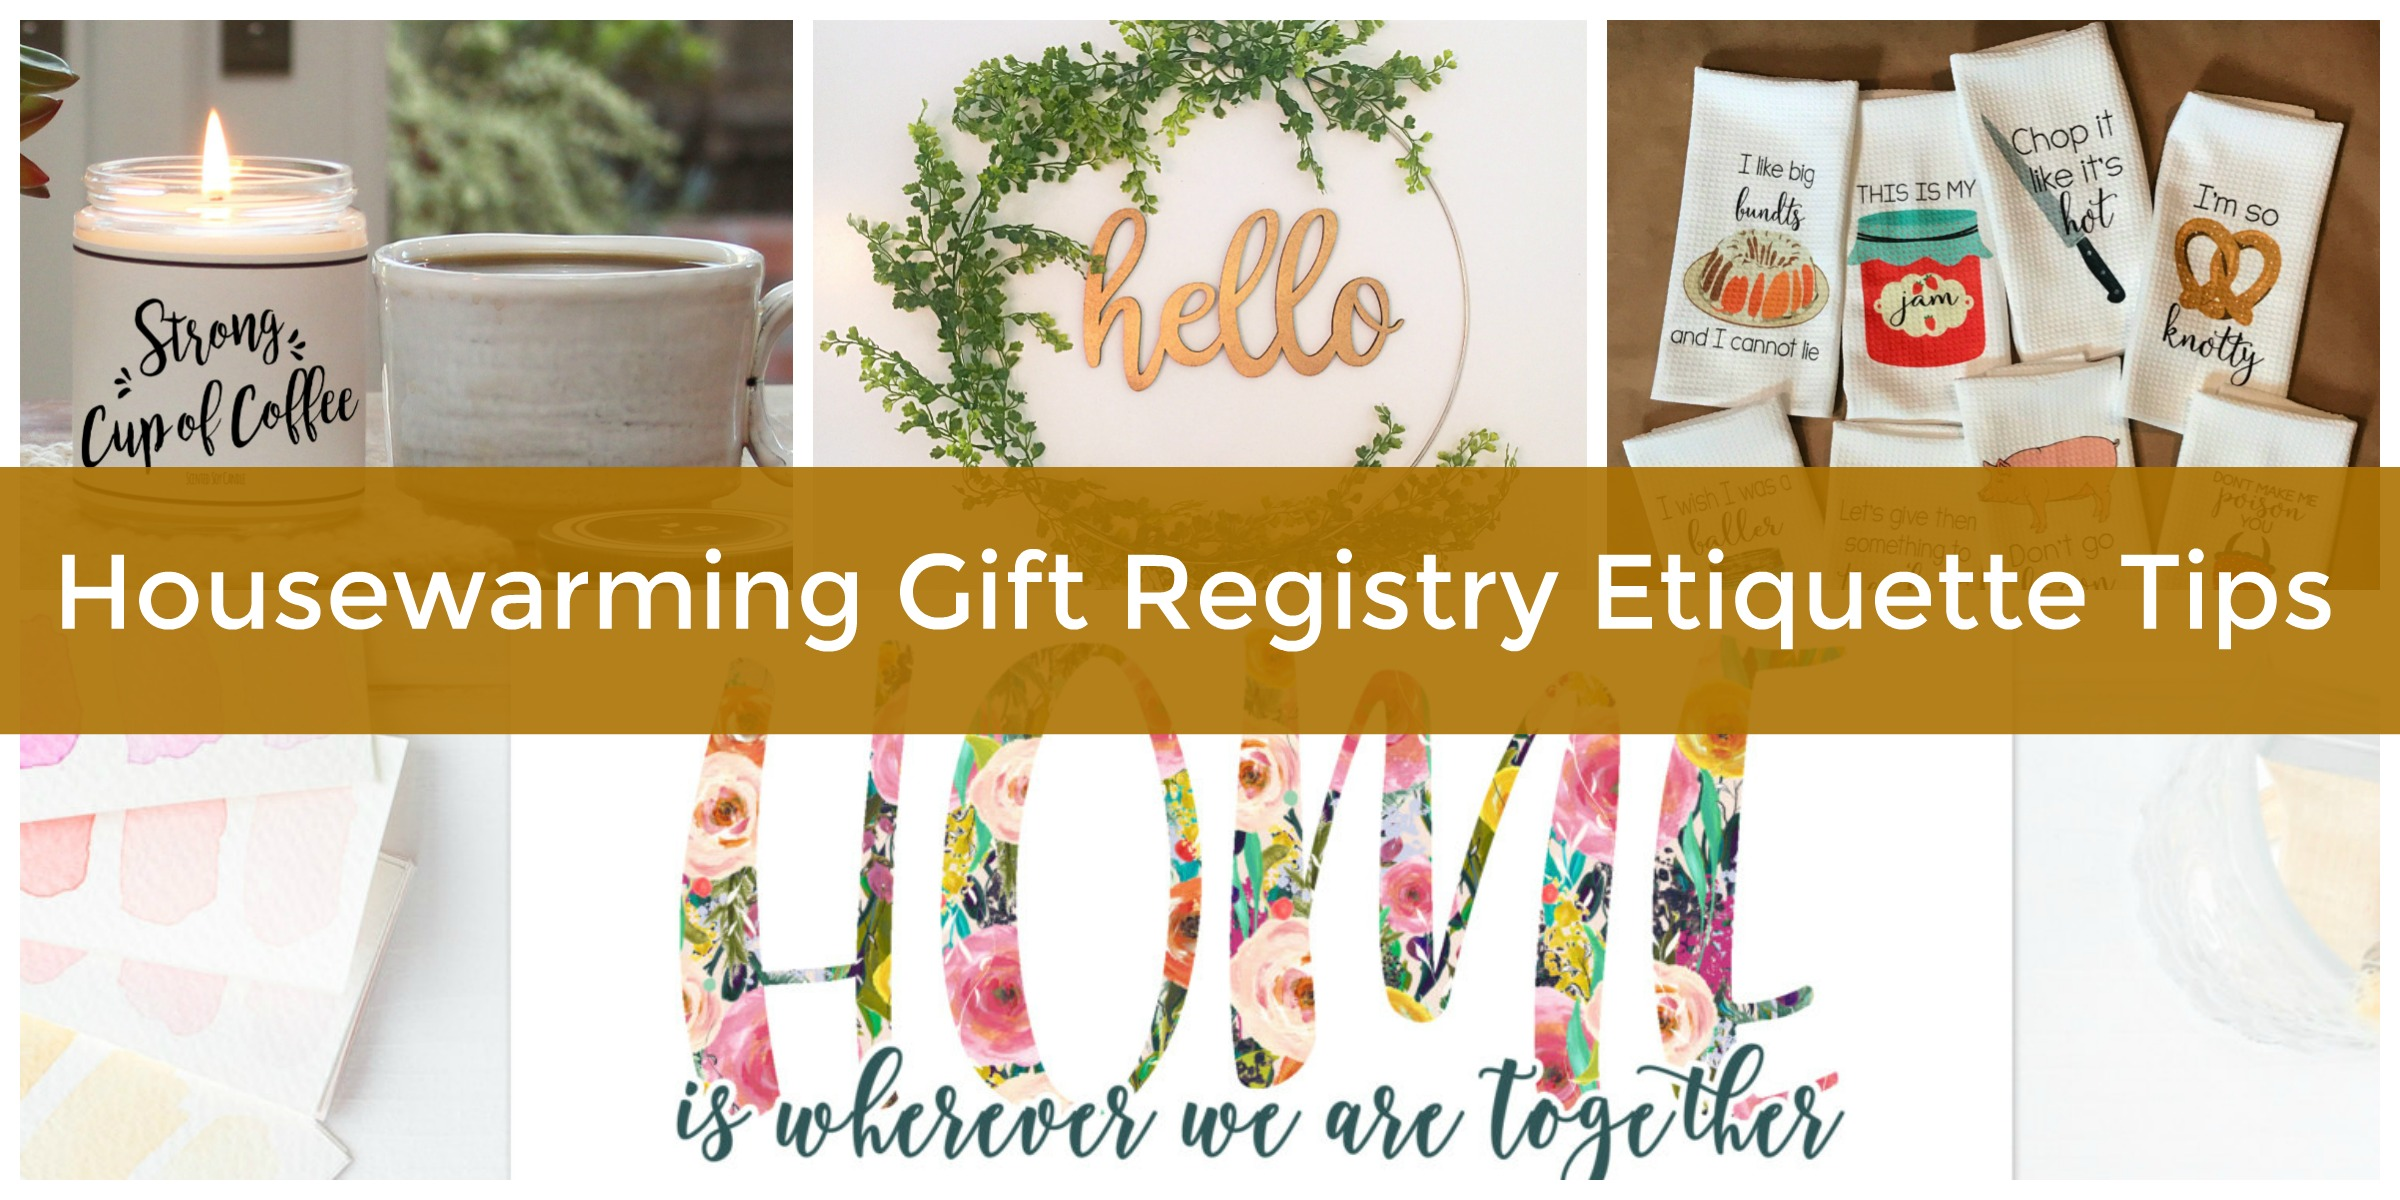 What To Buy For Housewarming Party Housewarming Gift Registry Etiquette Ideas Checklist Message More